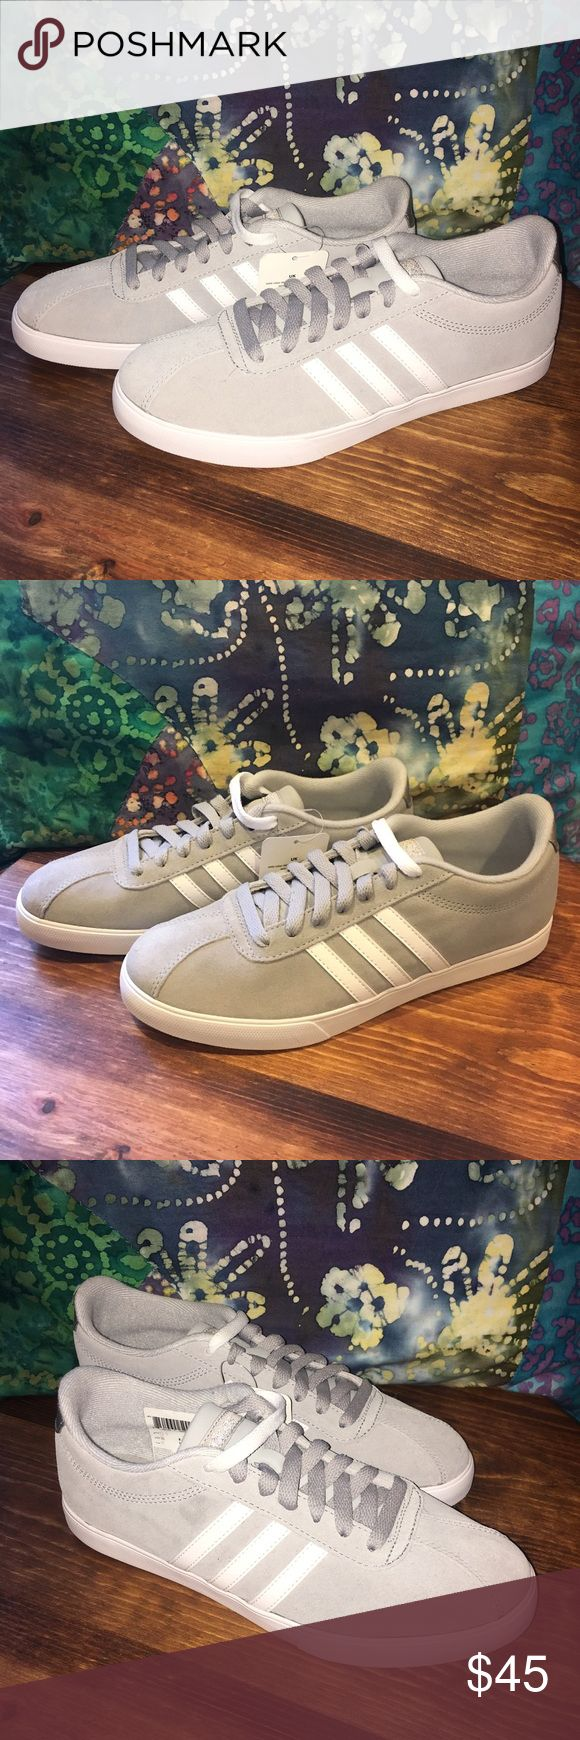 NWT Adidas Neo Sneaker NWT. Adidas Neo Courtset Sneaker. Suede upper. Grey/white. Comes with both white and grey laces! Size 8. New with tags!😘 Adidas Shoes Sneakers